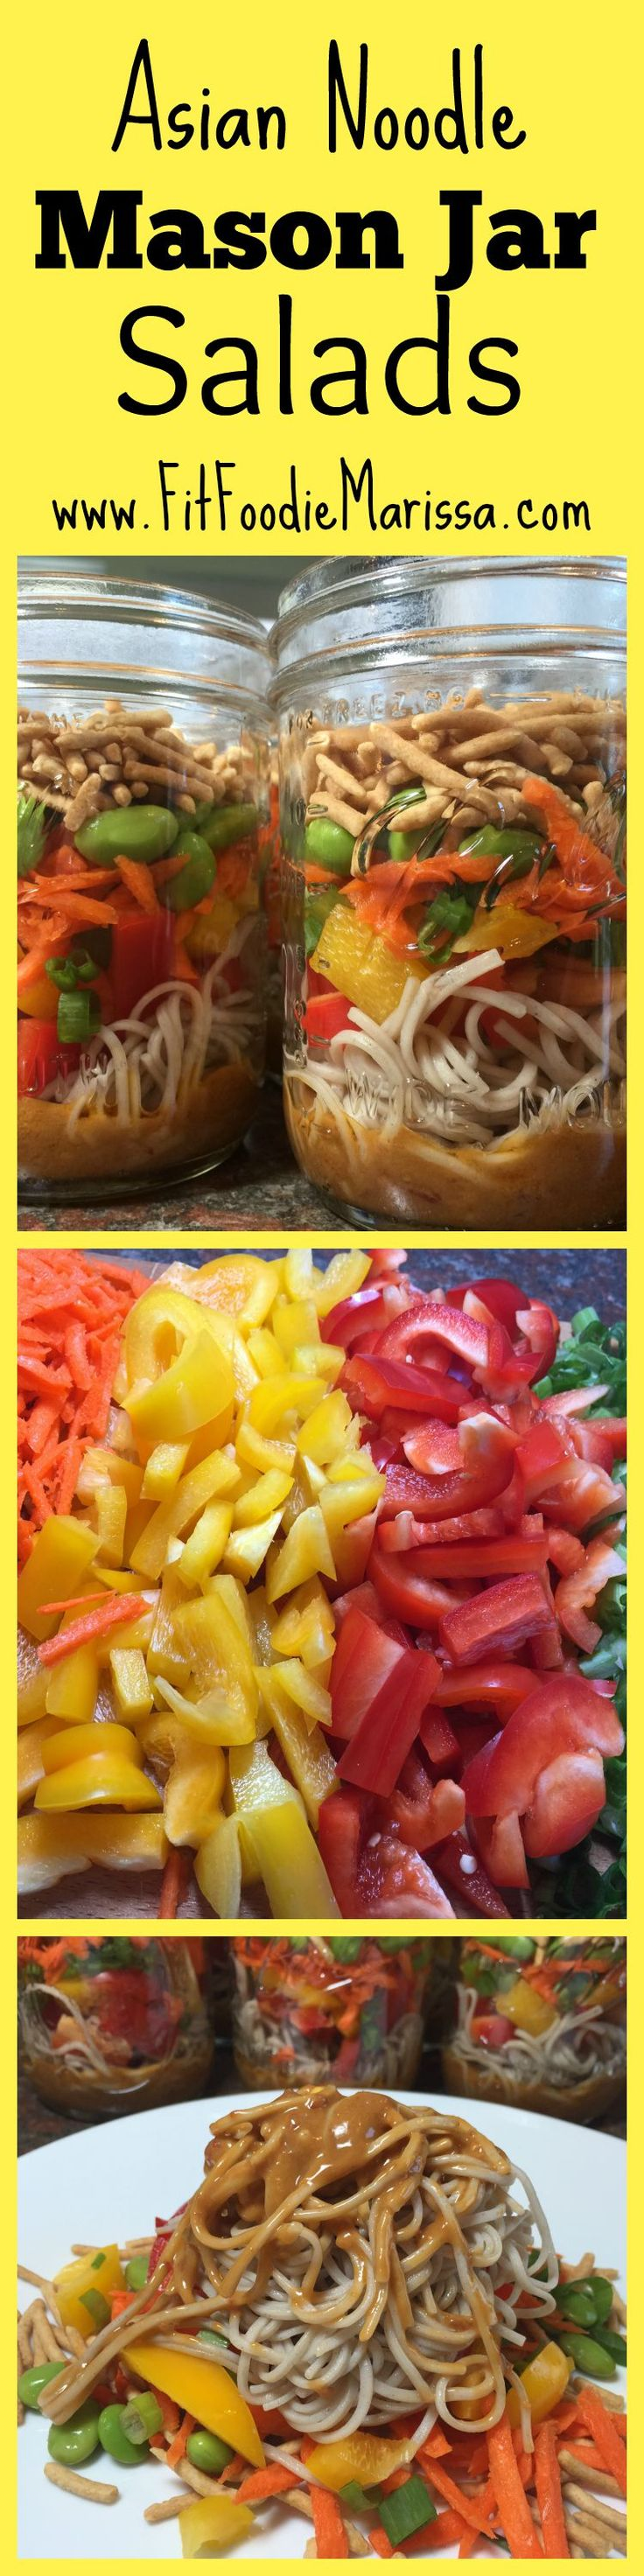 Tasty Asian Noodle Mason Jar Salad. Makes a total of 8 pint glasses! Perfect lunch item. www.fitfoodiemarissa.com